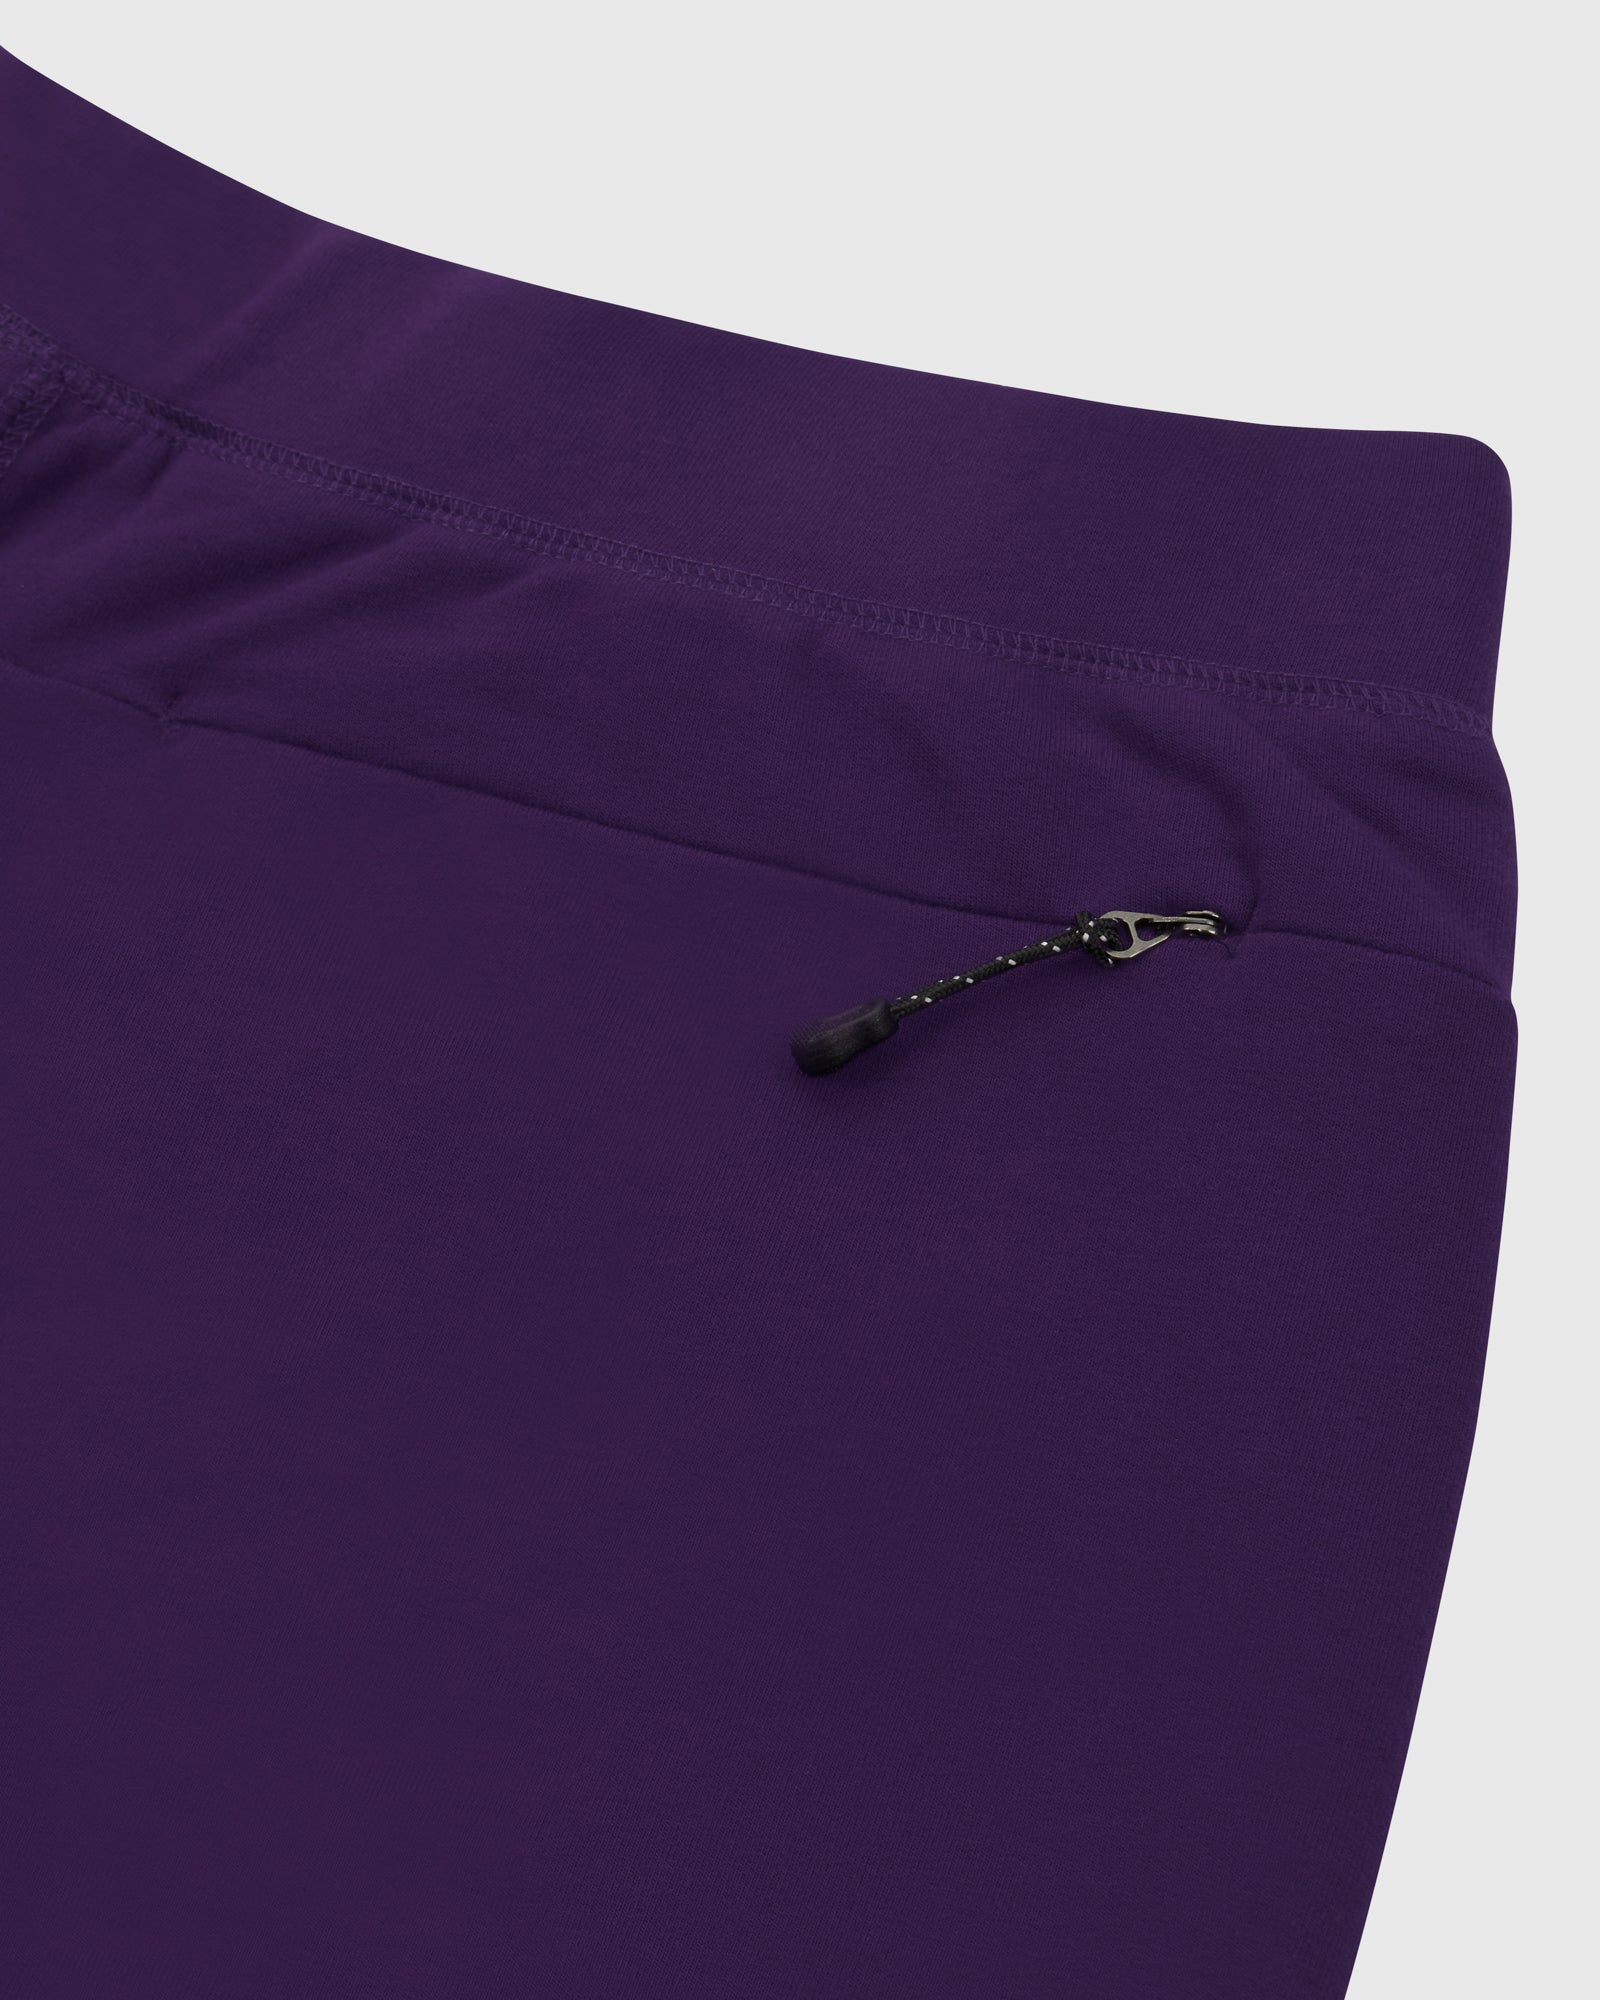 OVO LIGHTWEIGHT FRENCH TERRY SWEATPANT - PURPLE IMAGE #5